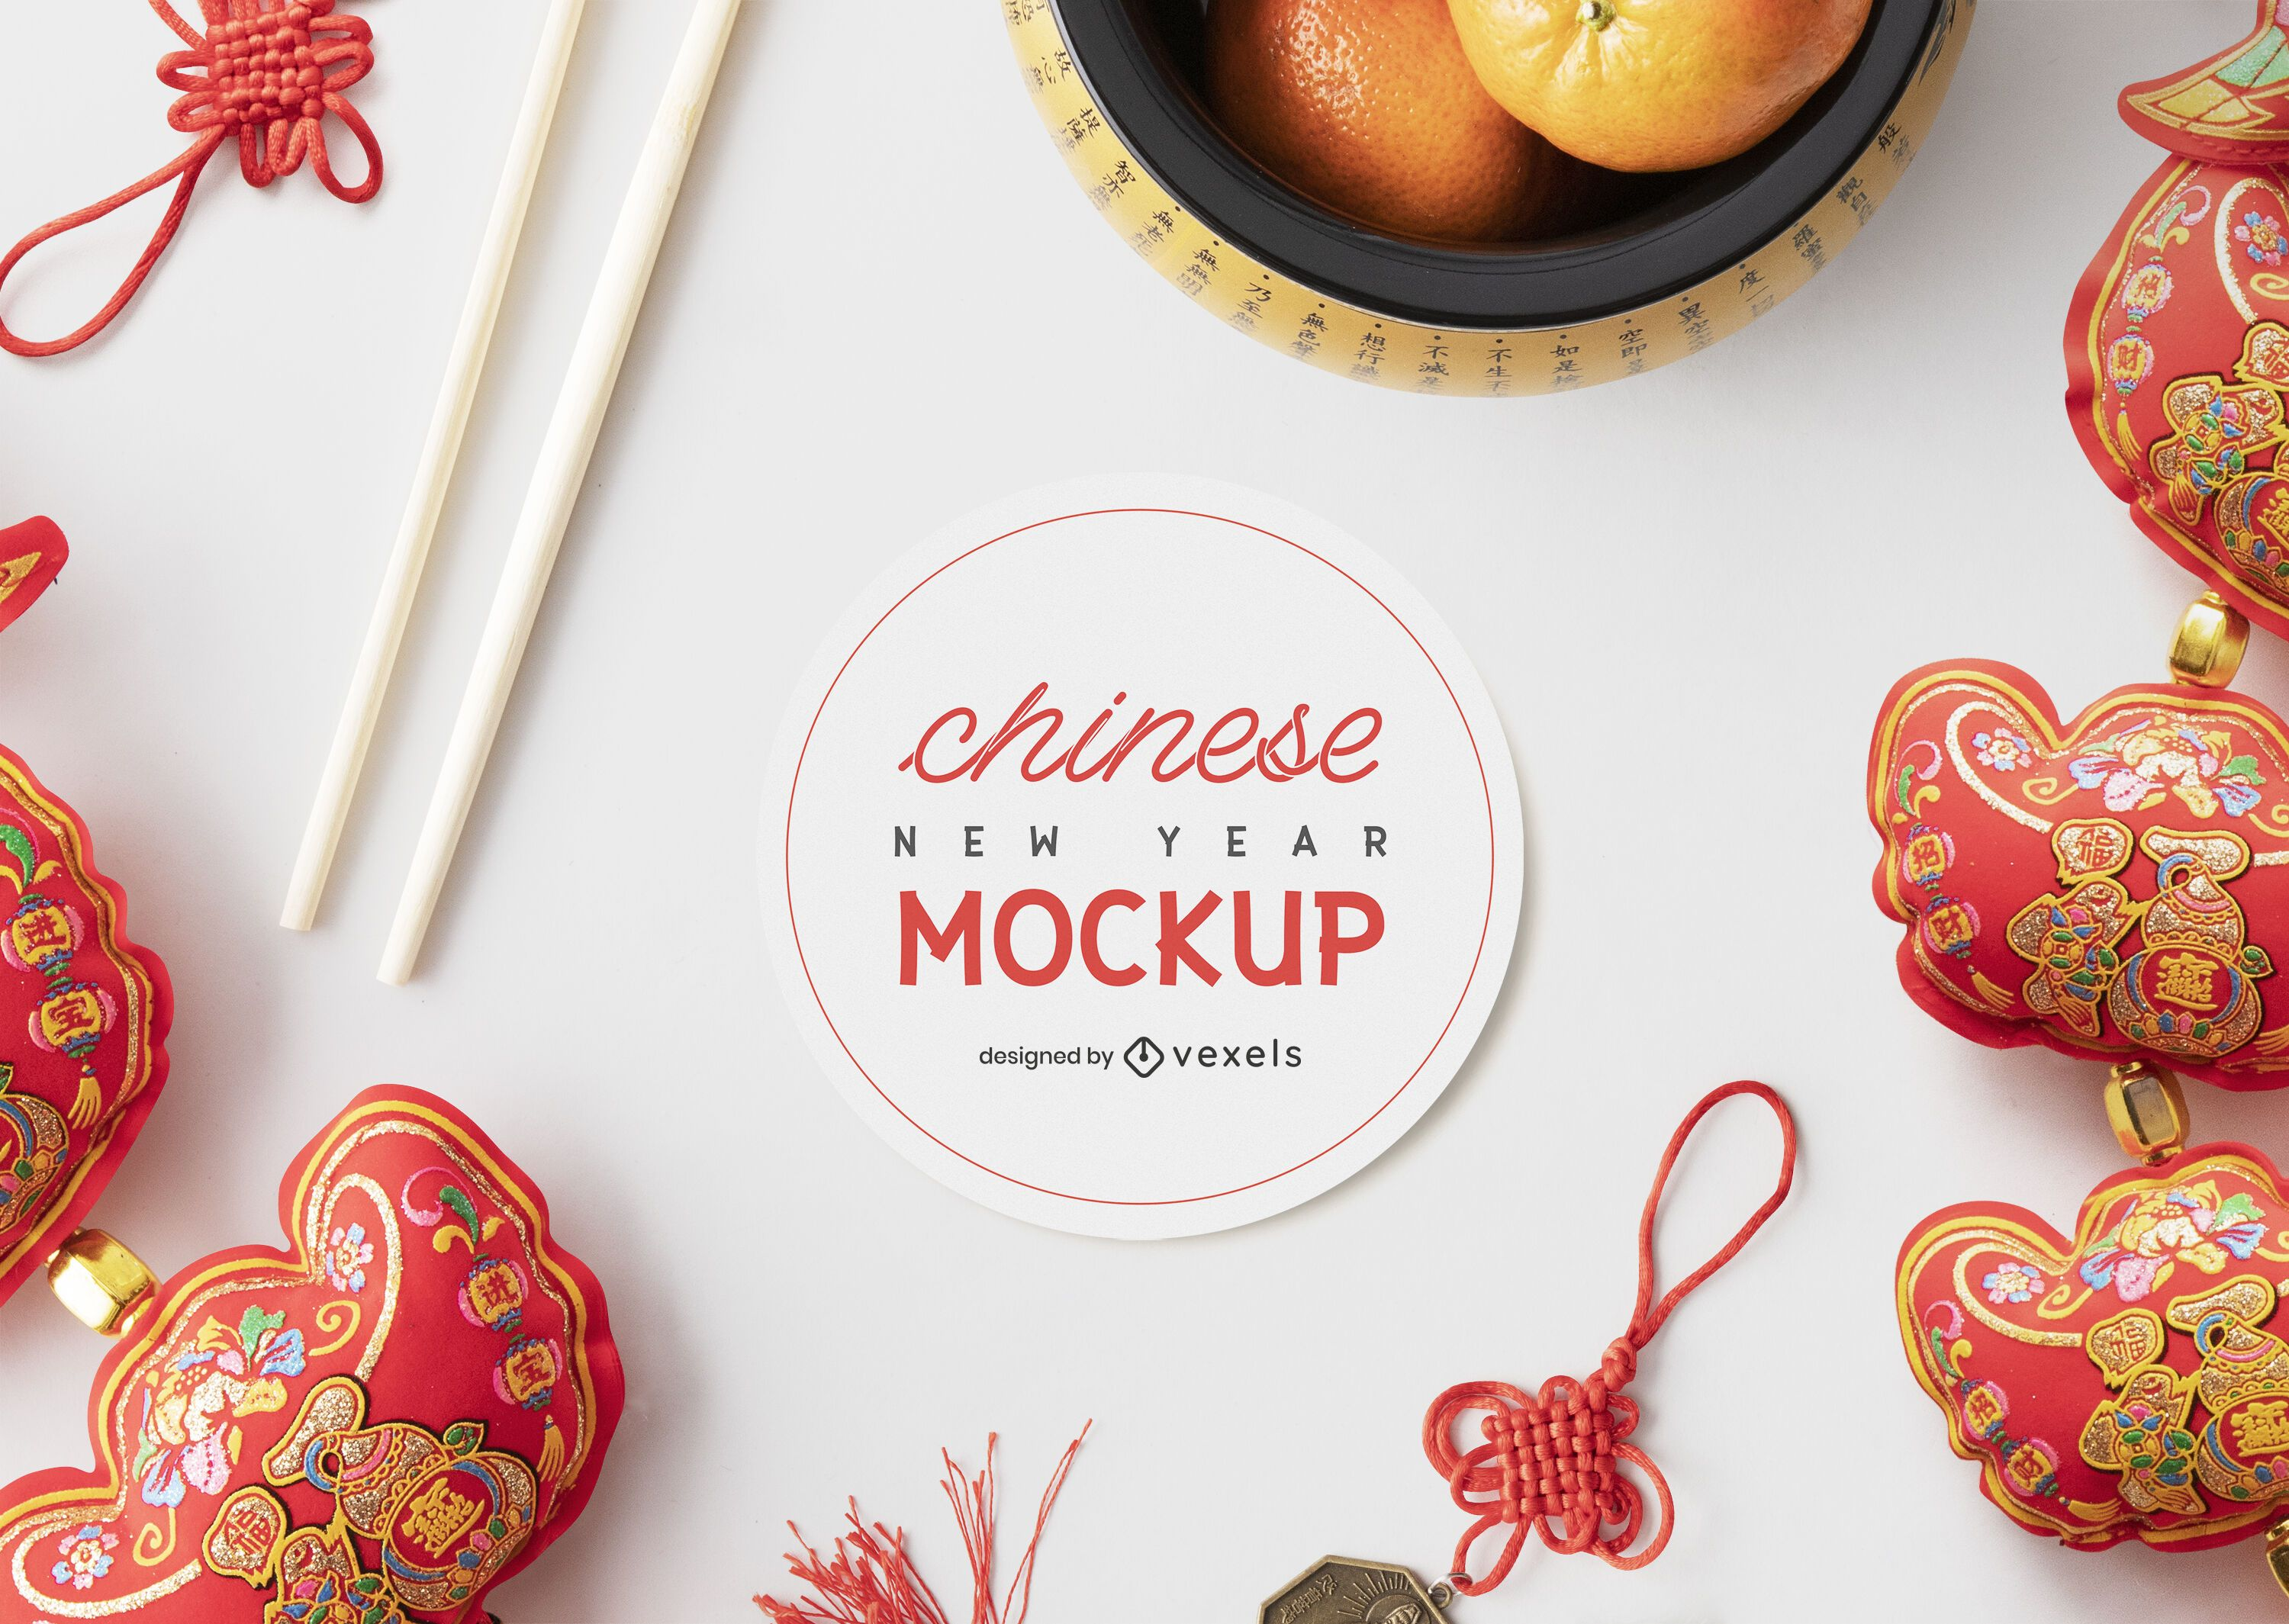 Chinese mockup composition